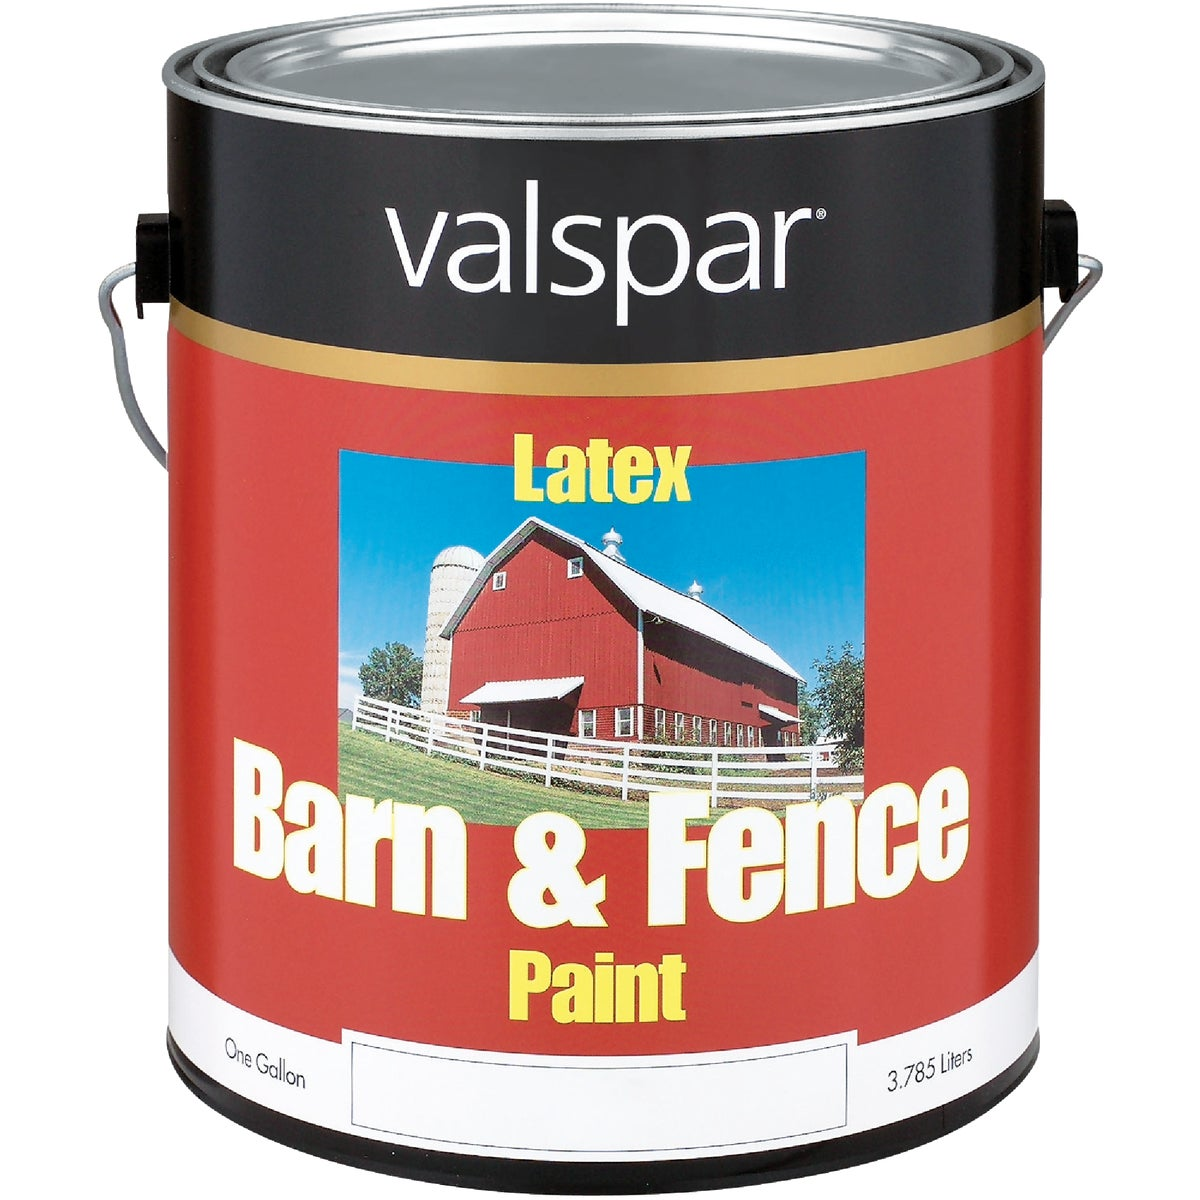 LTX FLAT RED BARN PAINT - 018.3121-10.007 by Valspar Corp